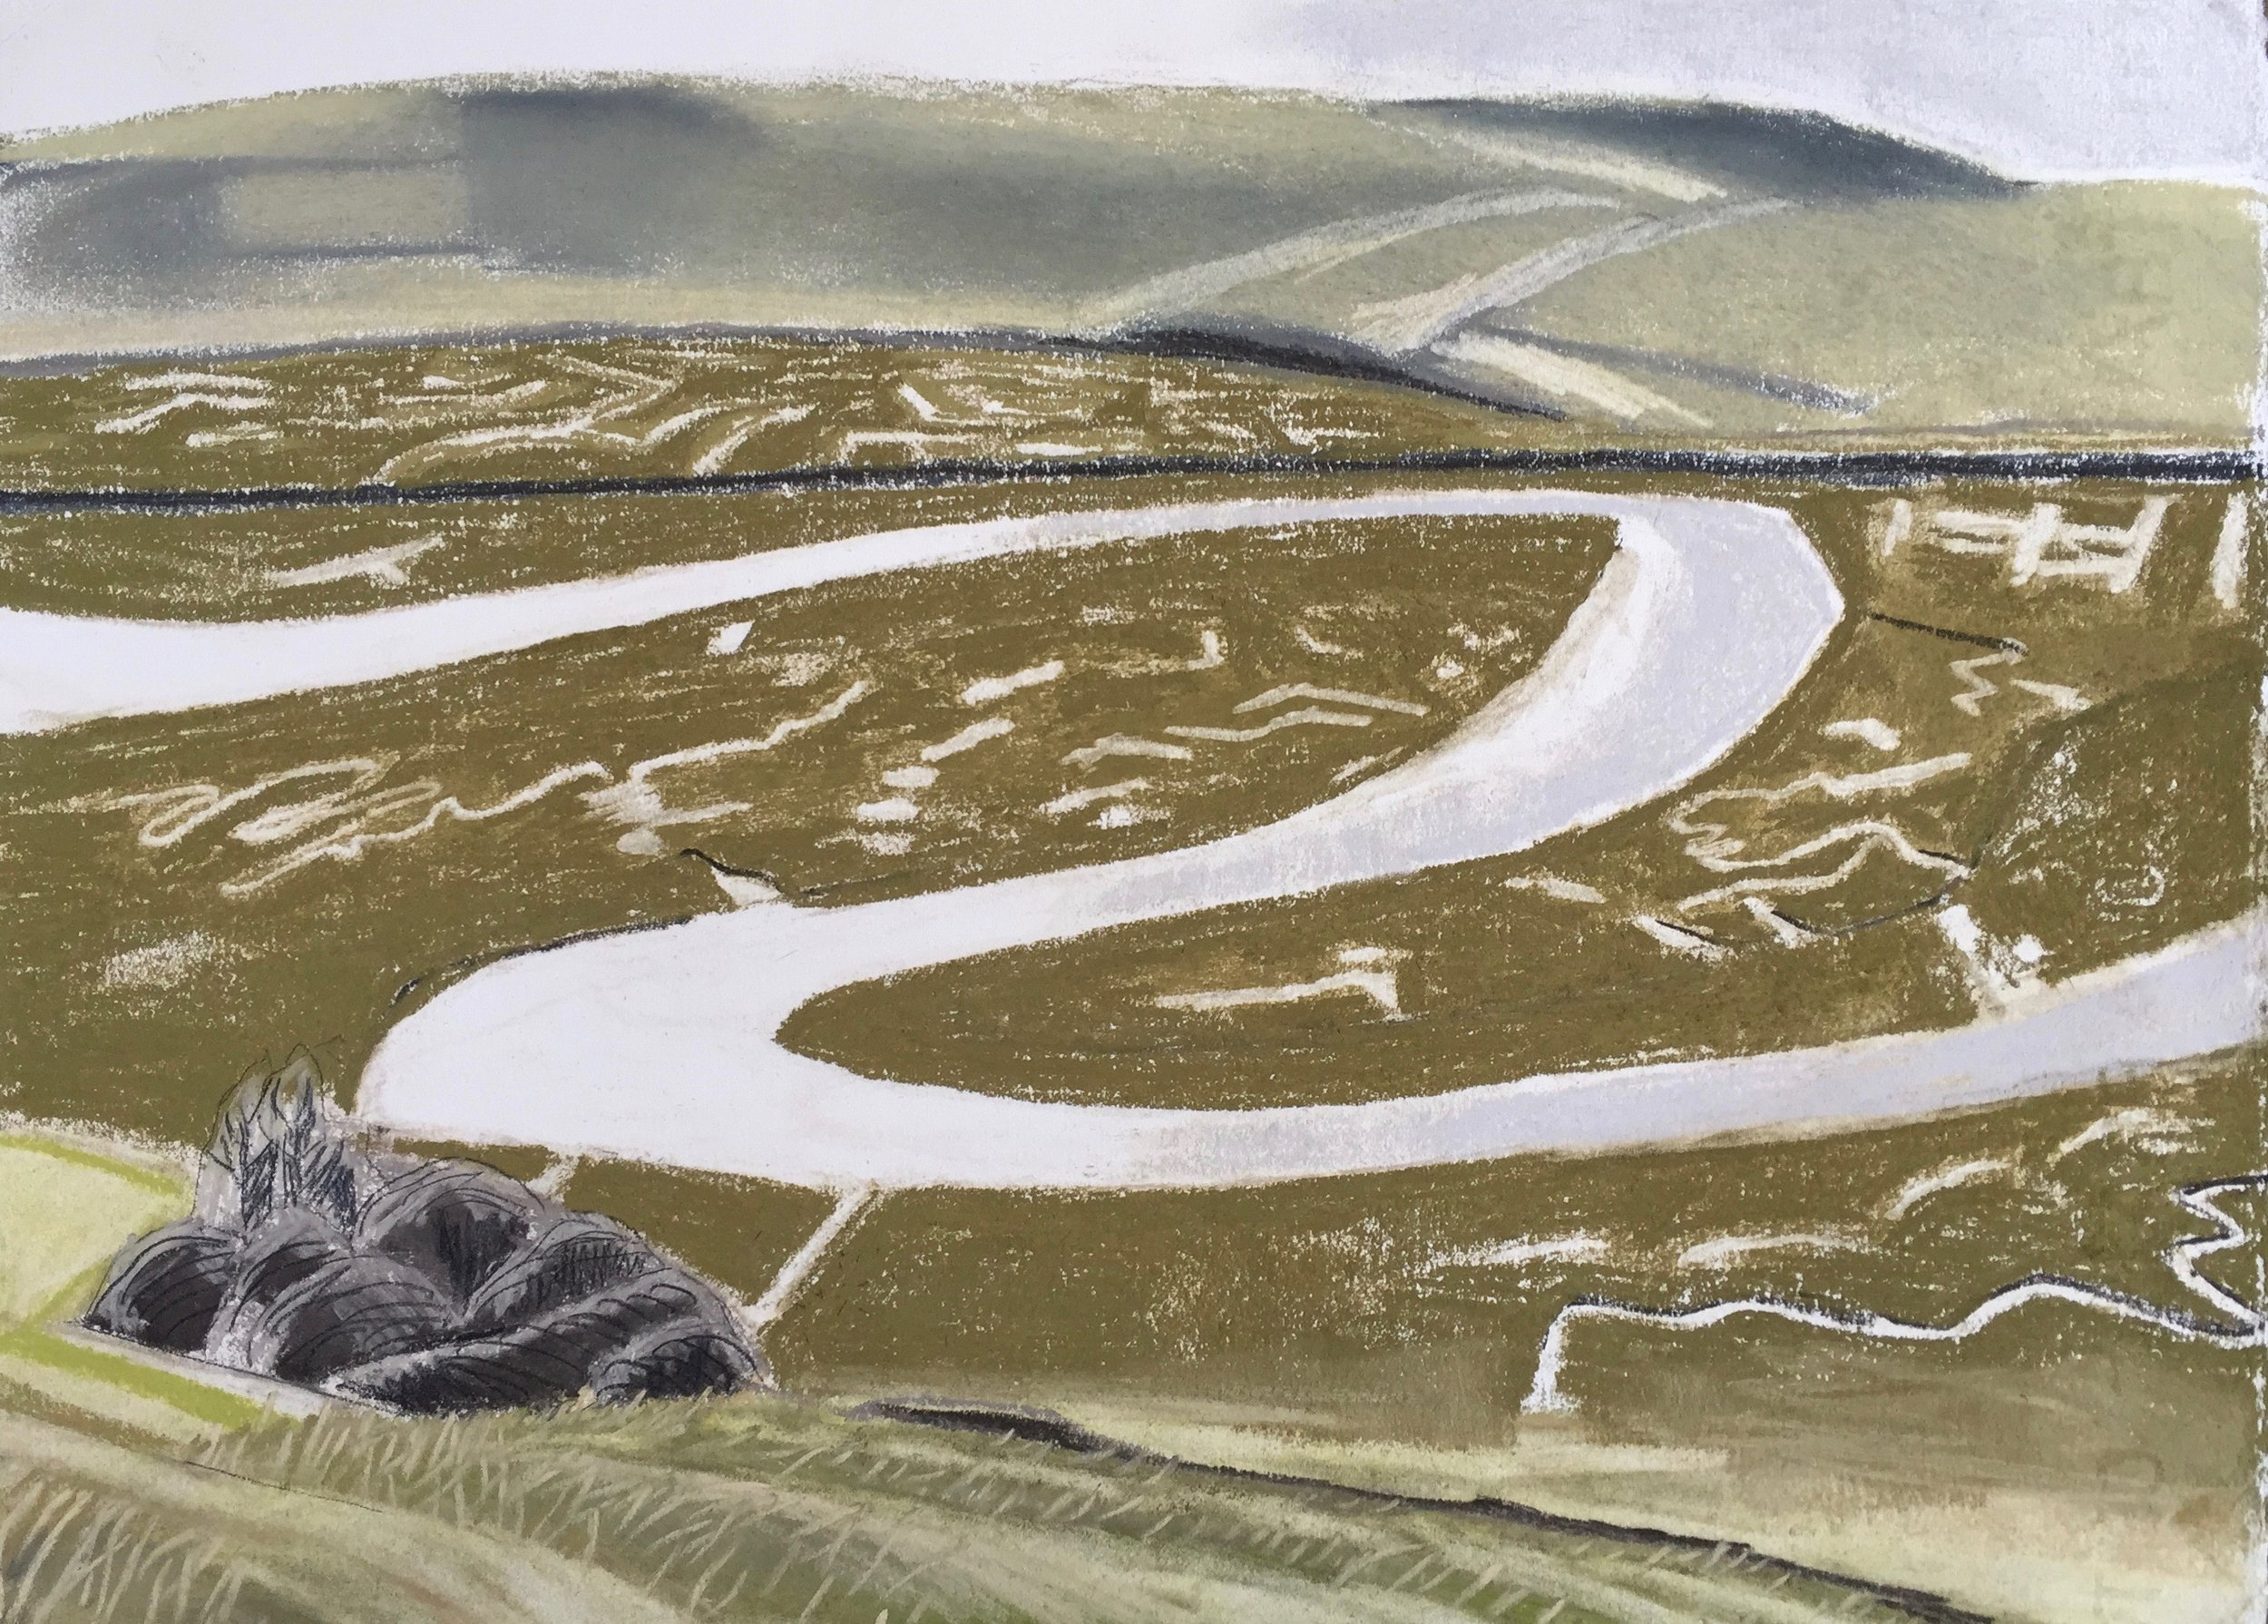 Cuckmere Bends, March 2018